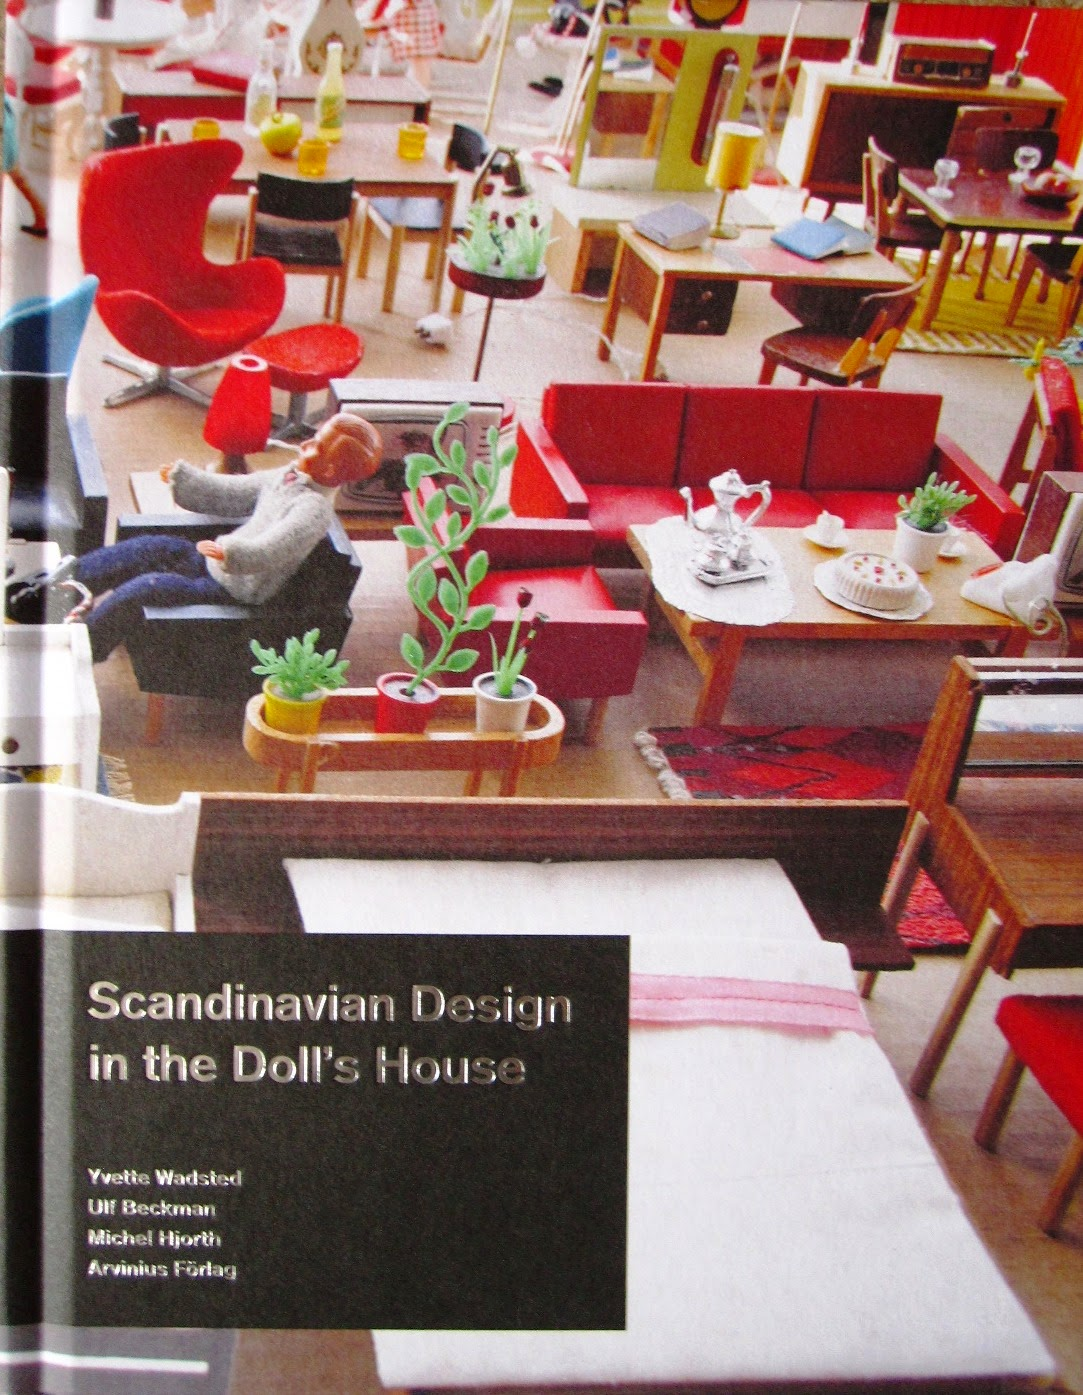 Copy of the book 'Scandinavian Design in the Dolls' House'.